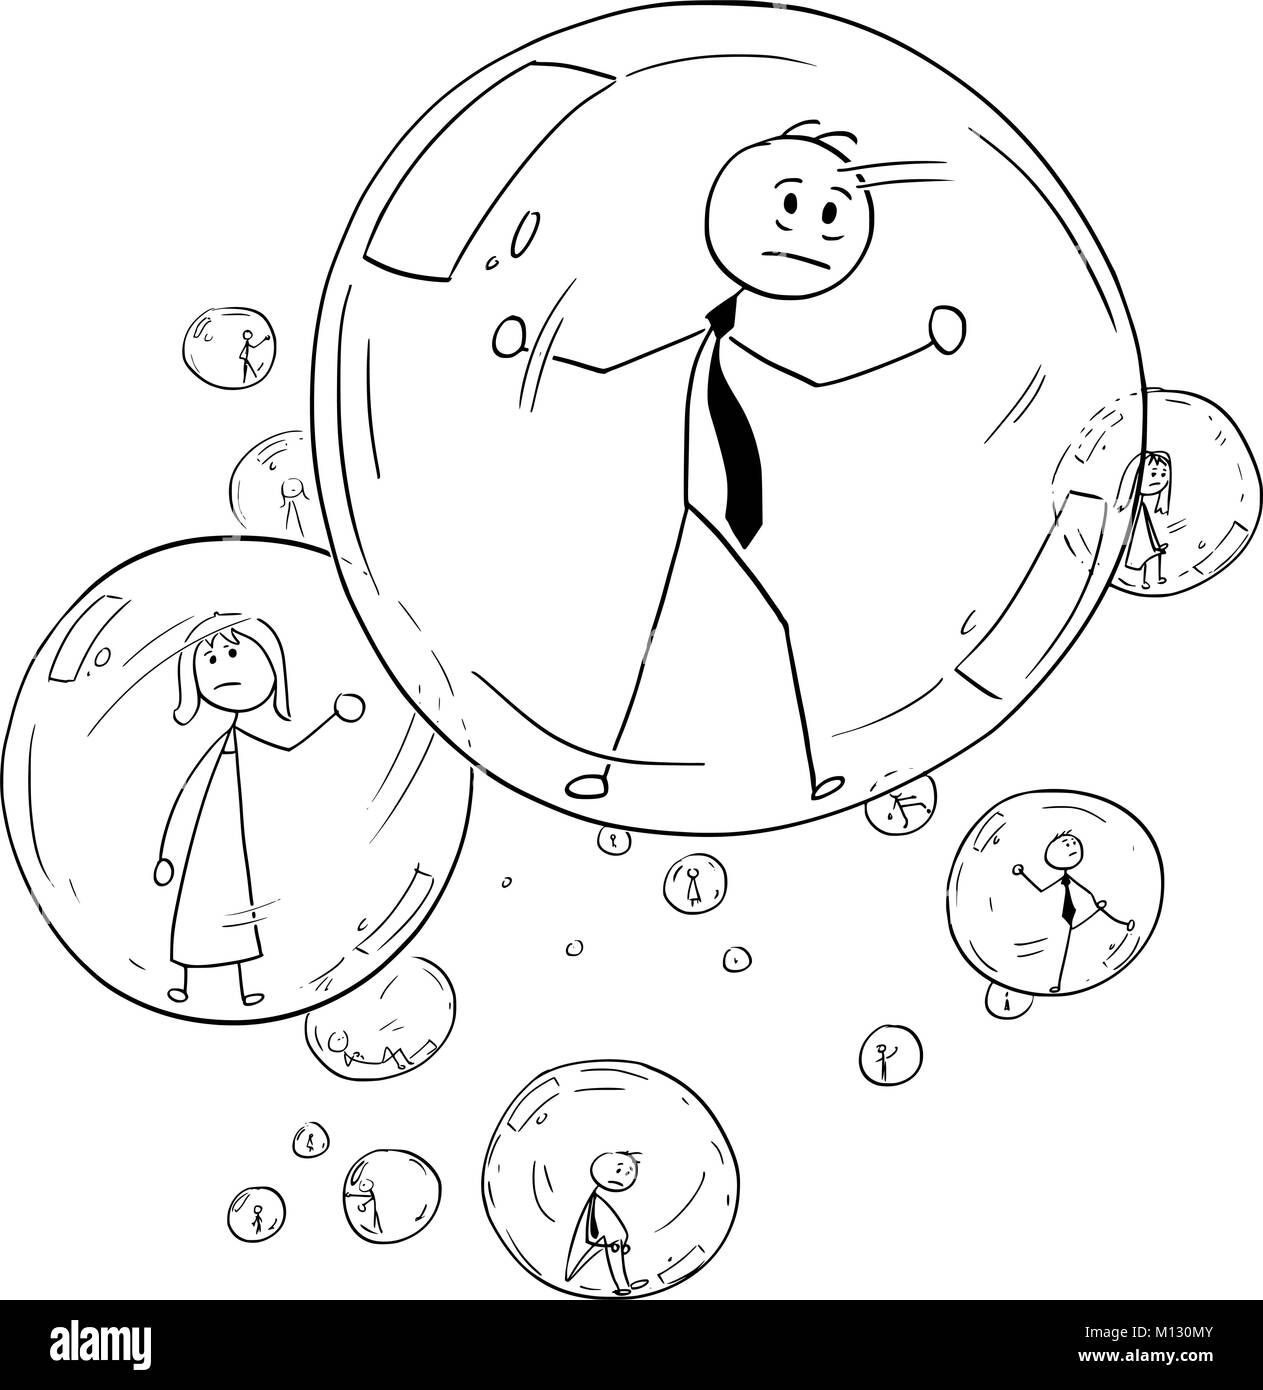 Conceptual Cartoon of Business people Imprisoned Inside the Glass Bubbles - Stock Image